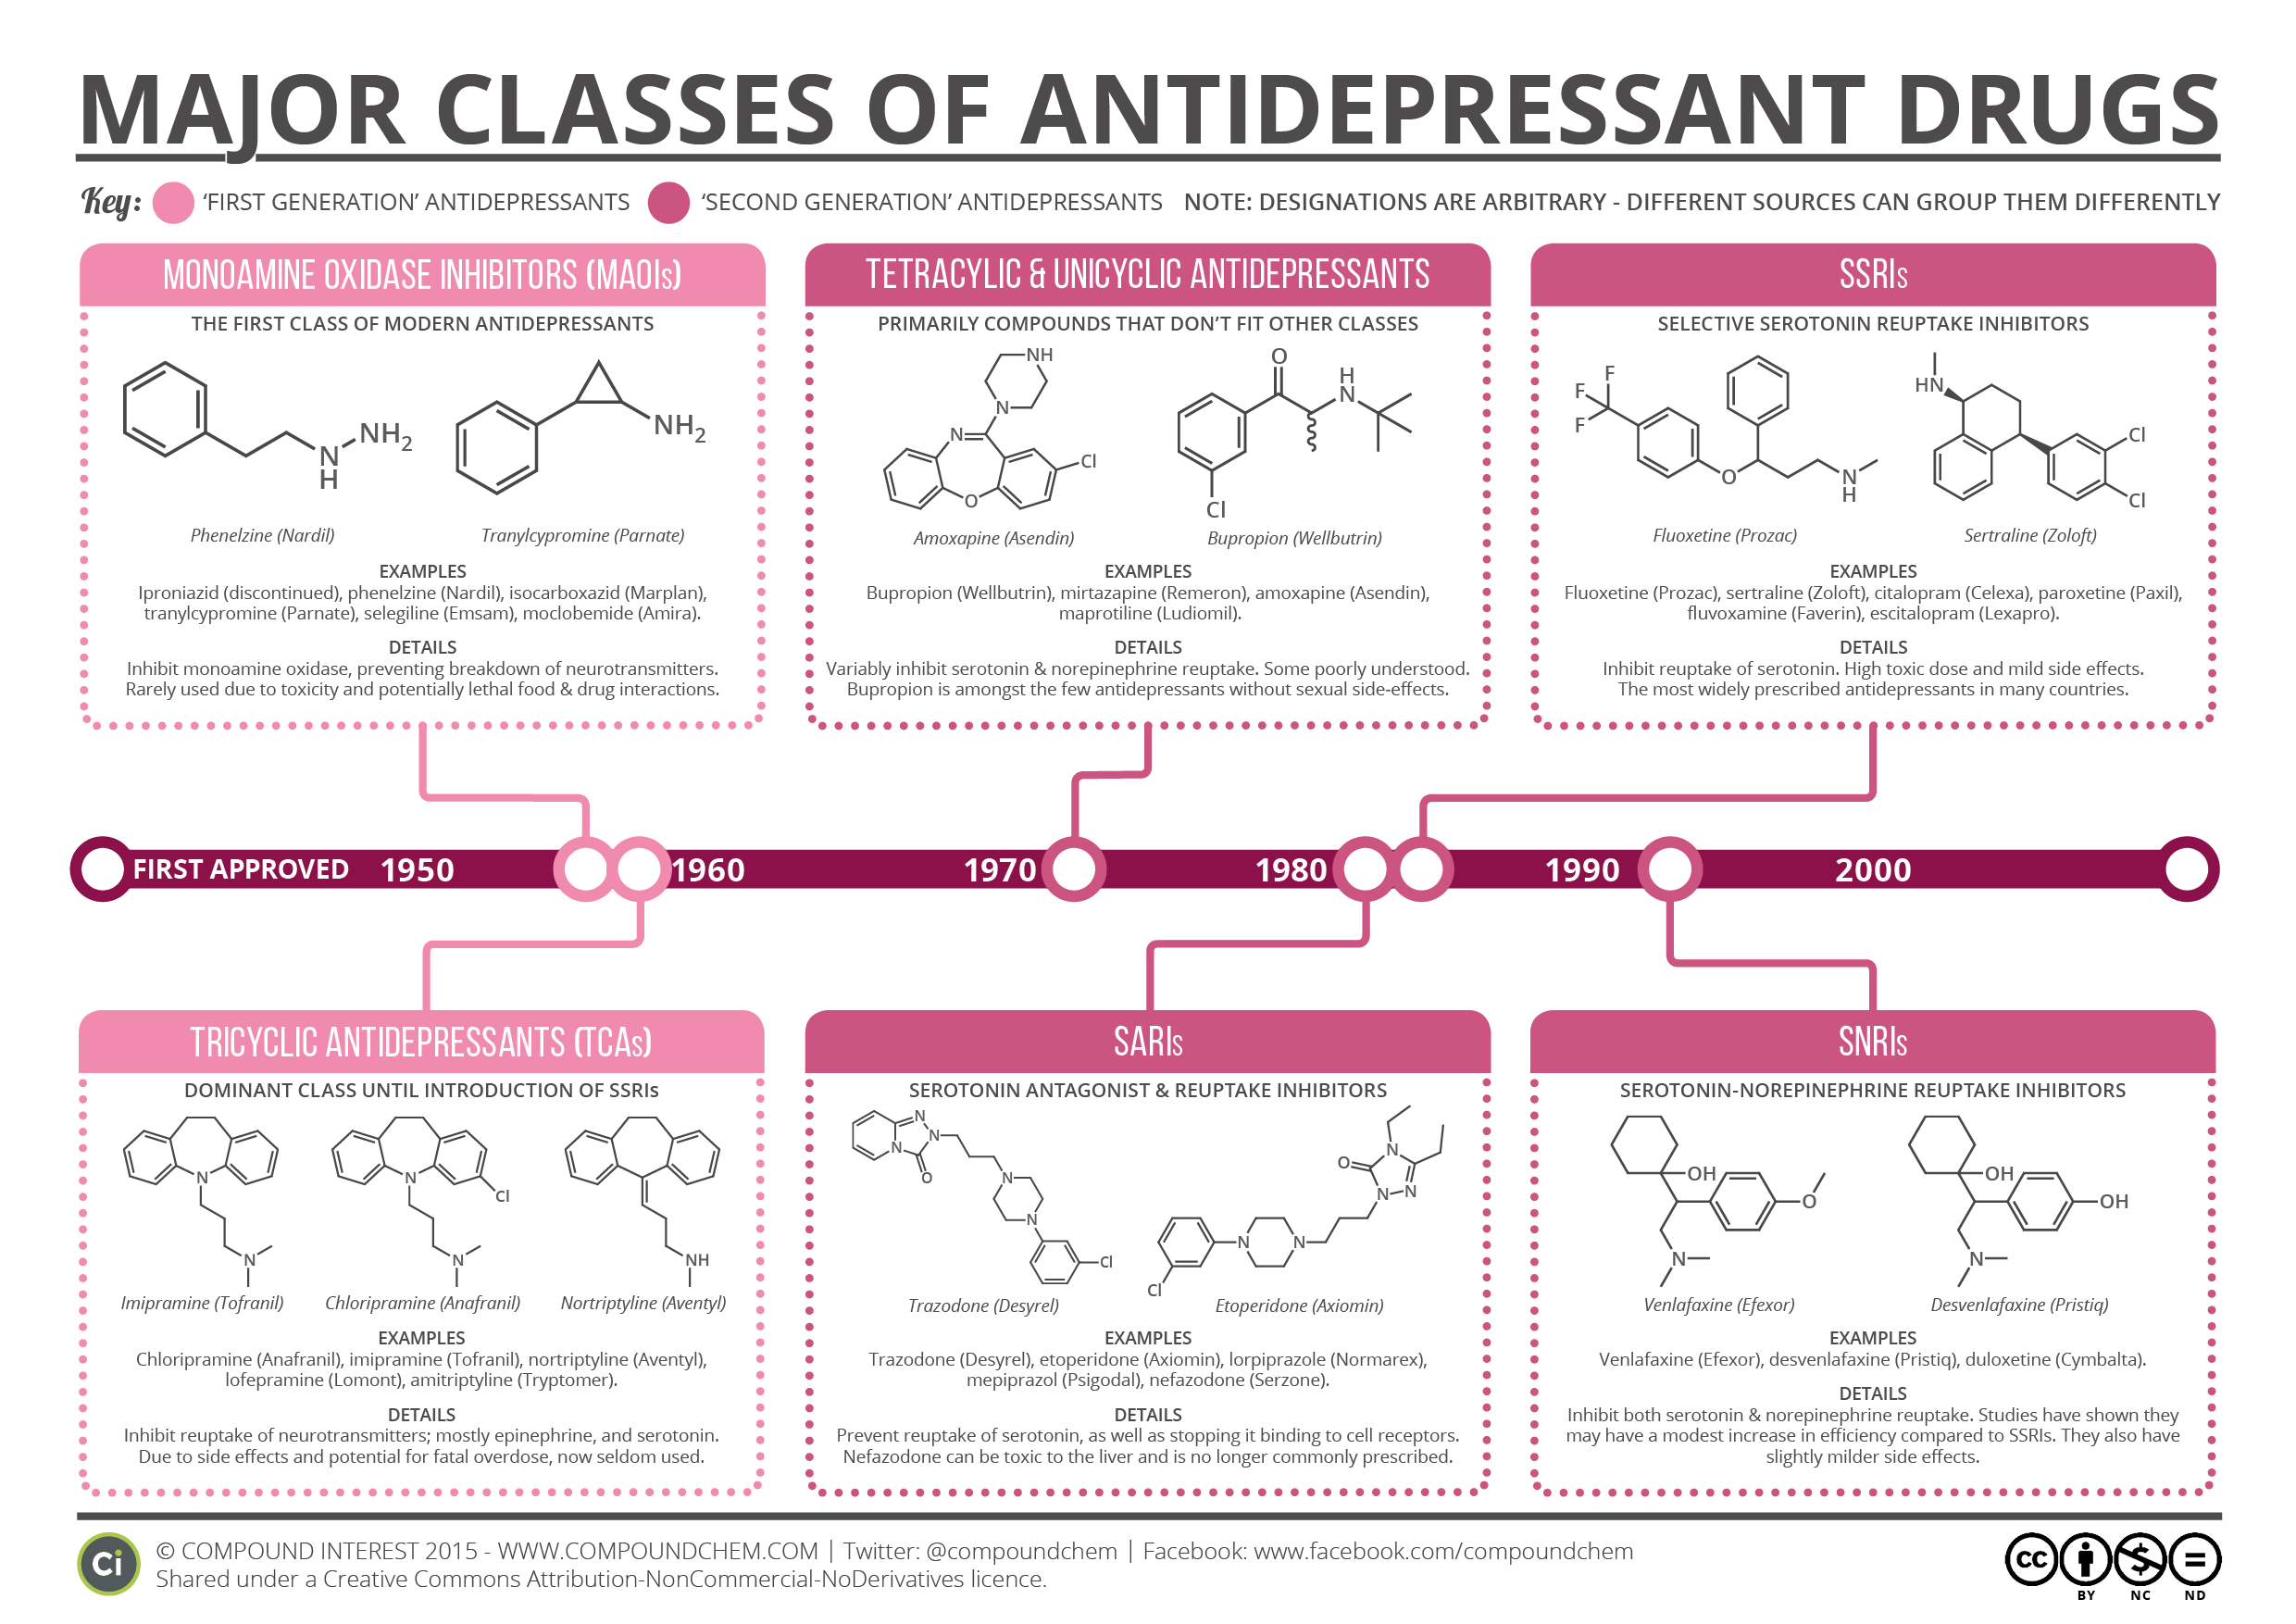 Major Classes Of Antidepressants Compound Interest